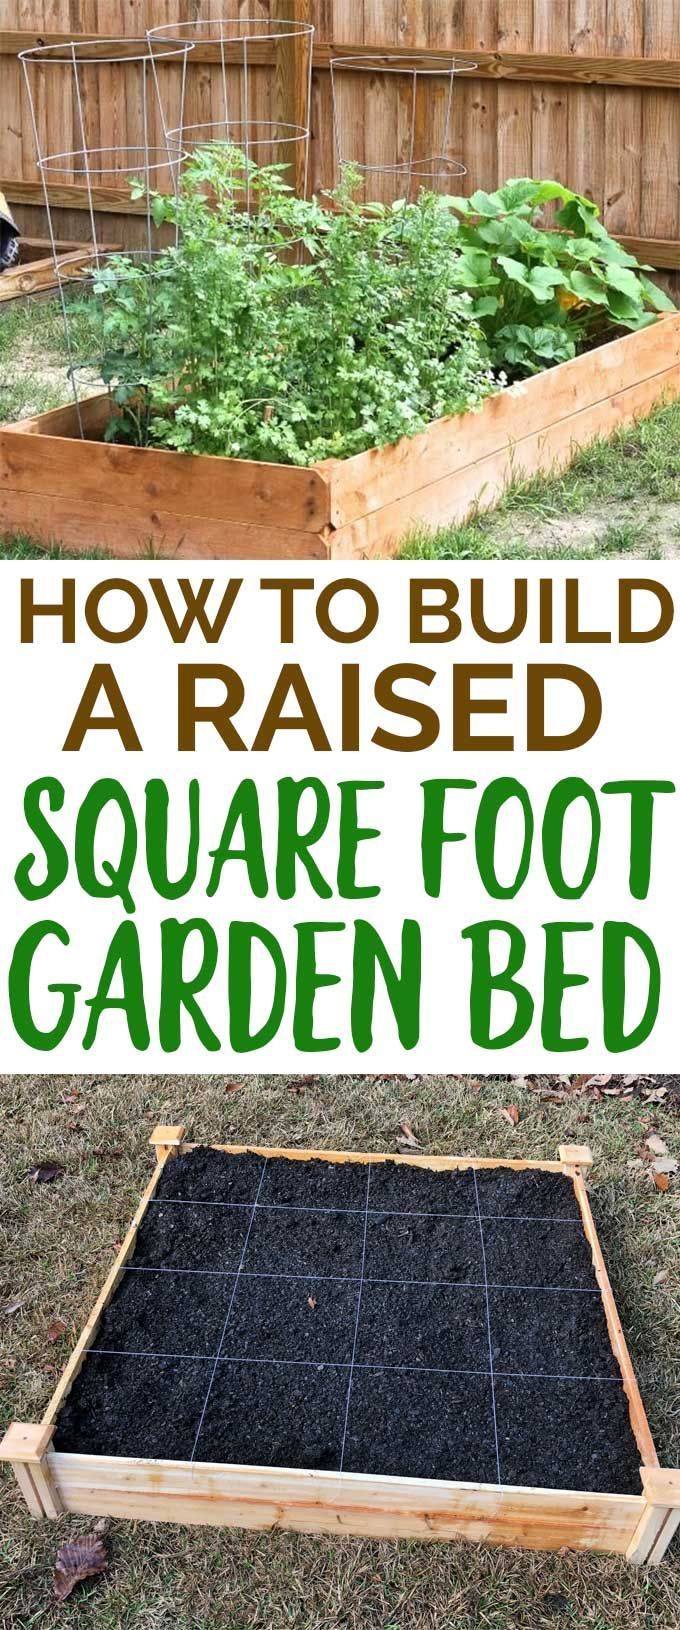 67b750dc15fd64d2735a77b2c089befb - Square Foot Gardening In The Ground